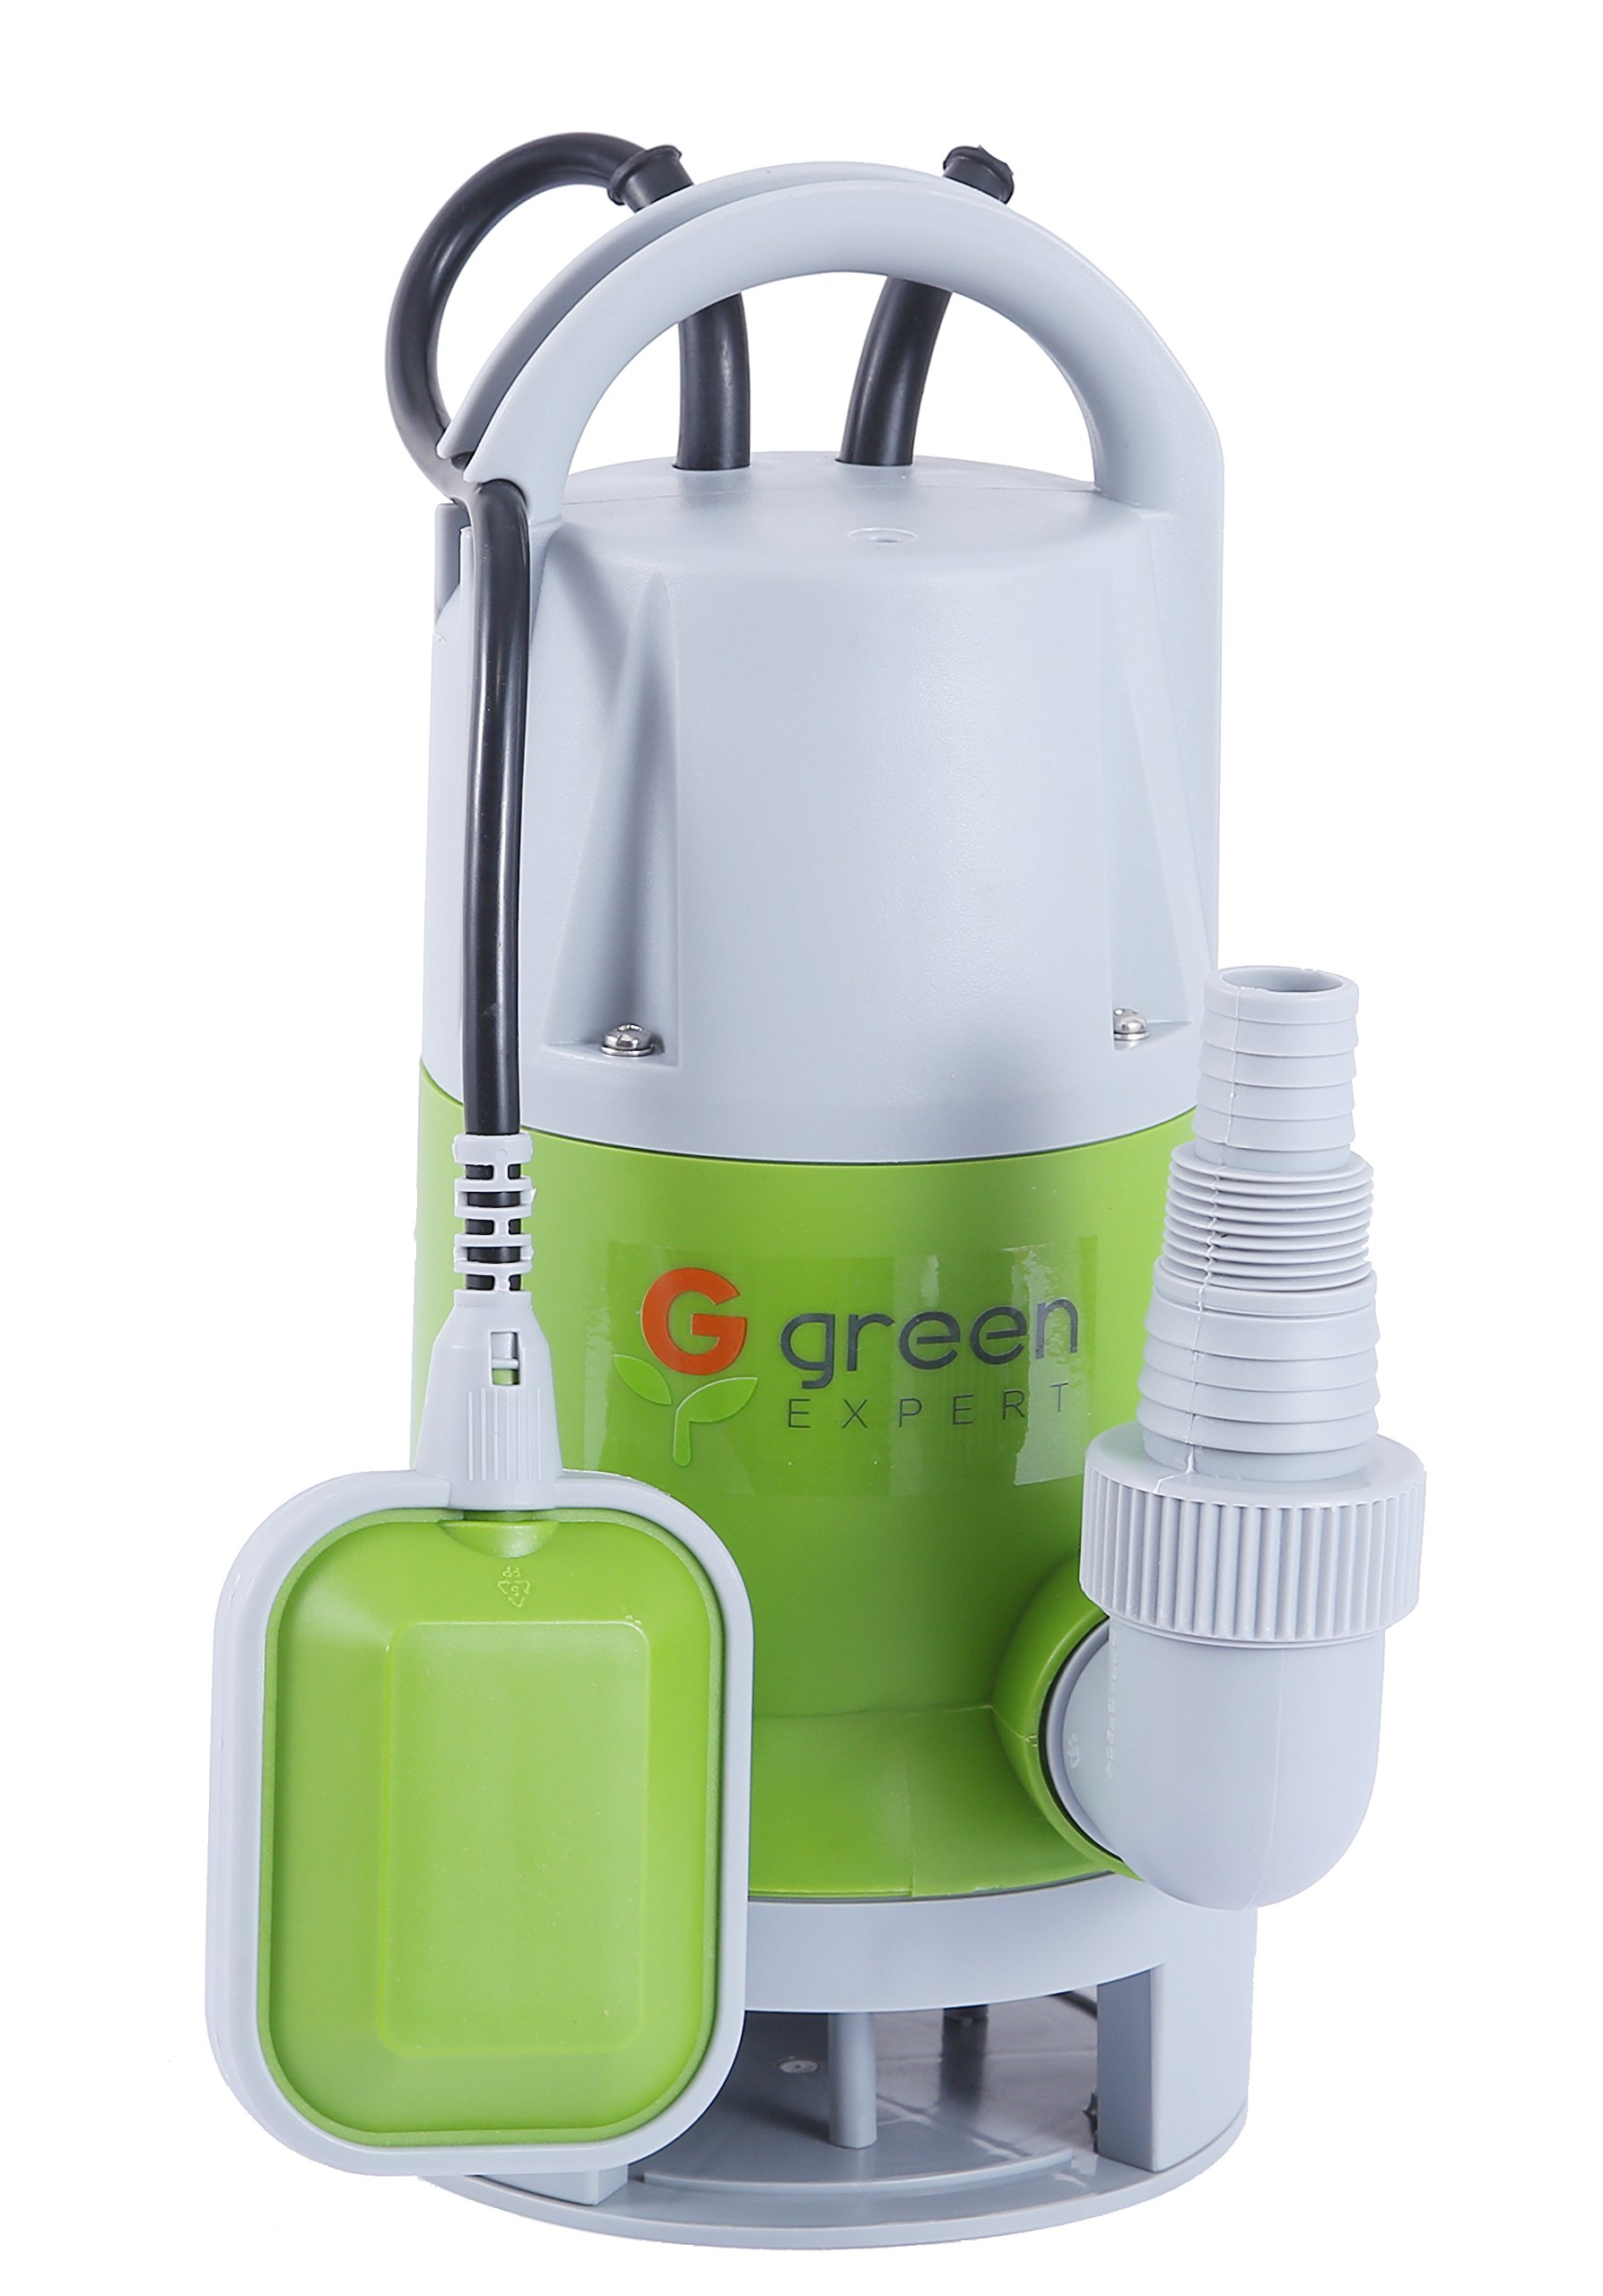 Green Expert 1/4HP 203619 Portable Submersible Automatic Sump Pump with Tethered Float Switch for Dirty Water 2113 GPH Water Removal Pump